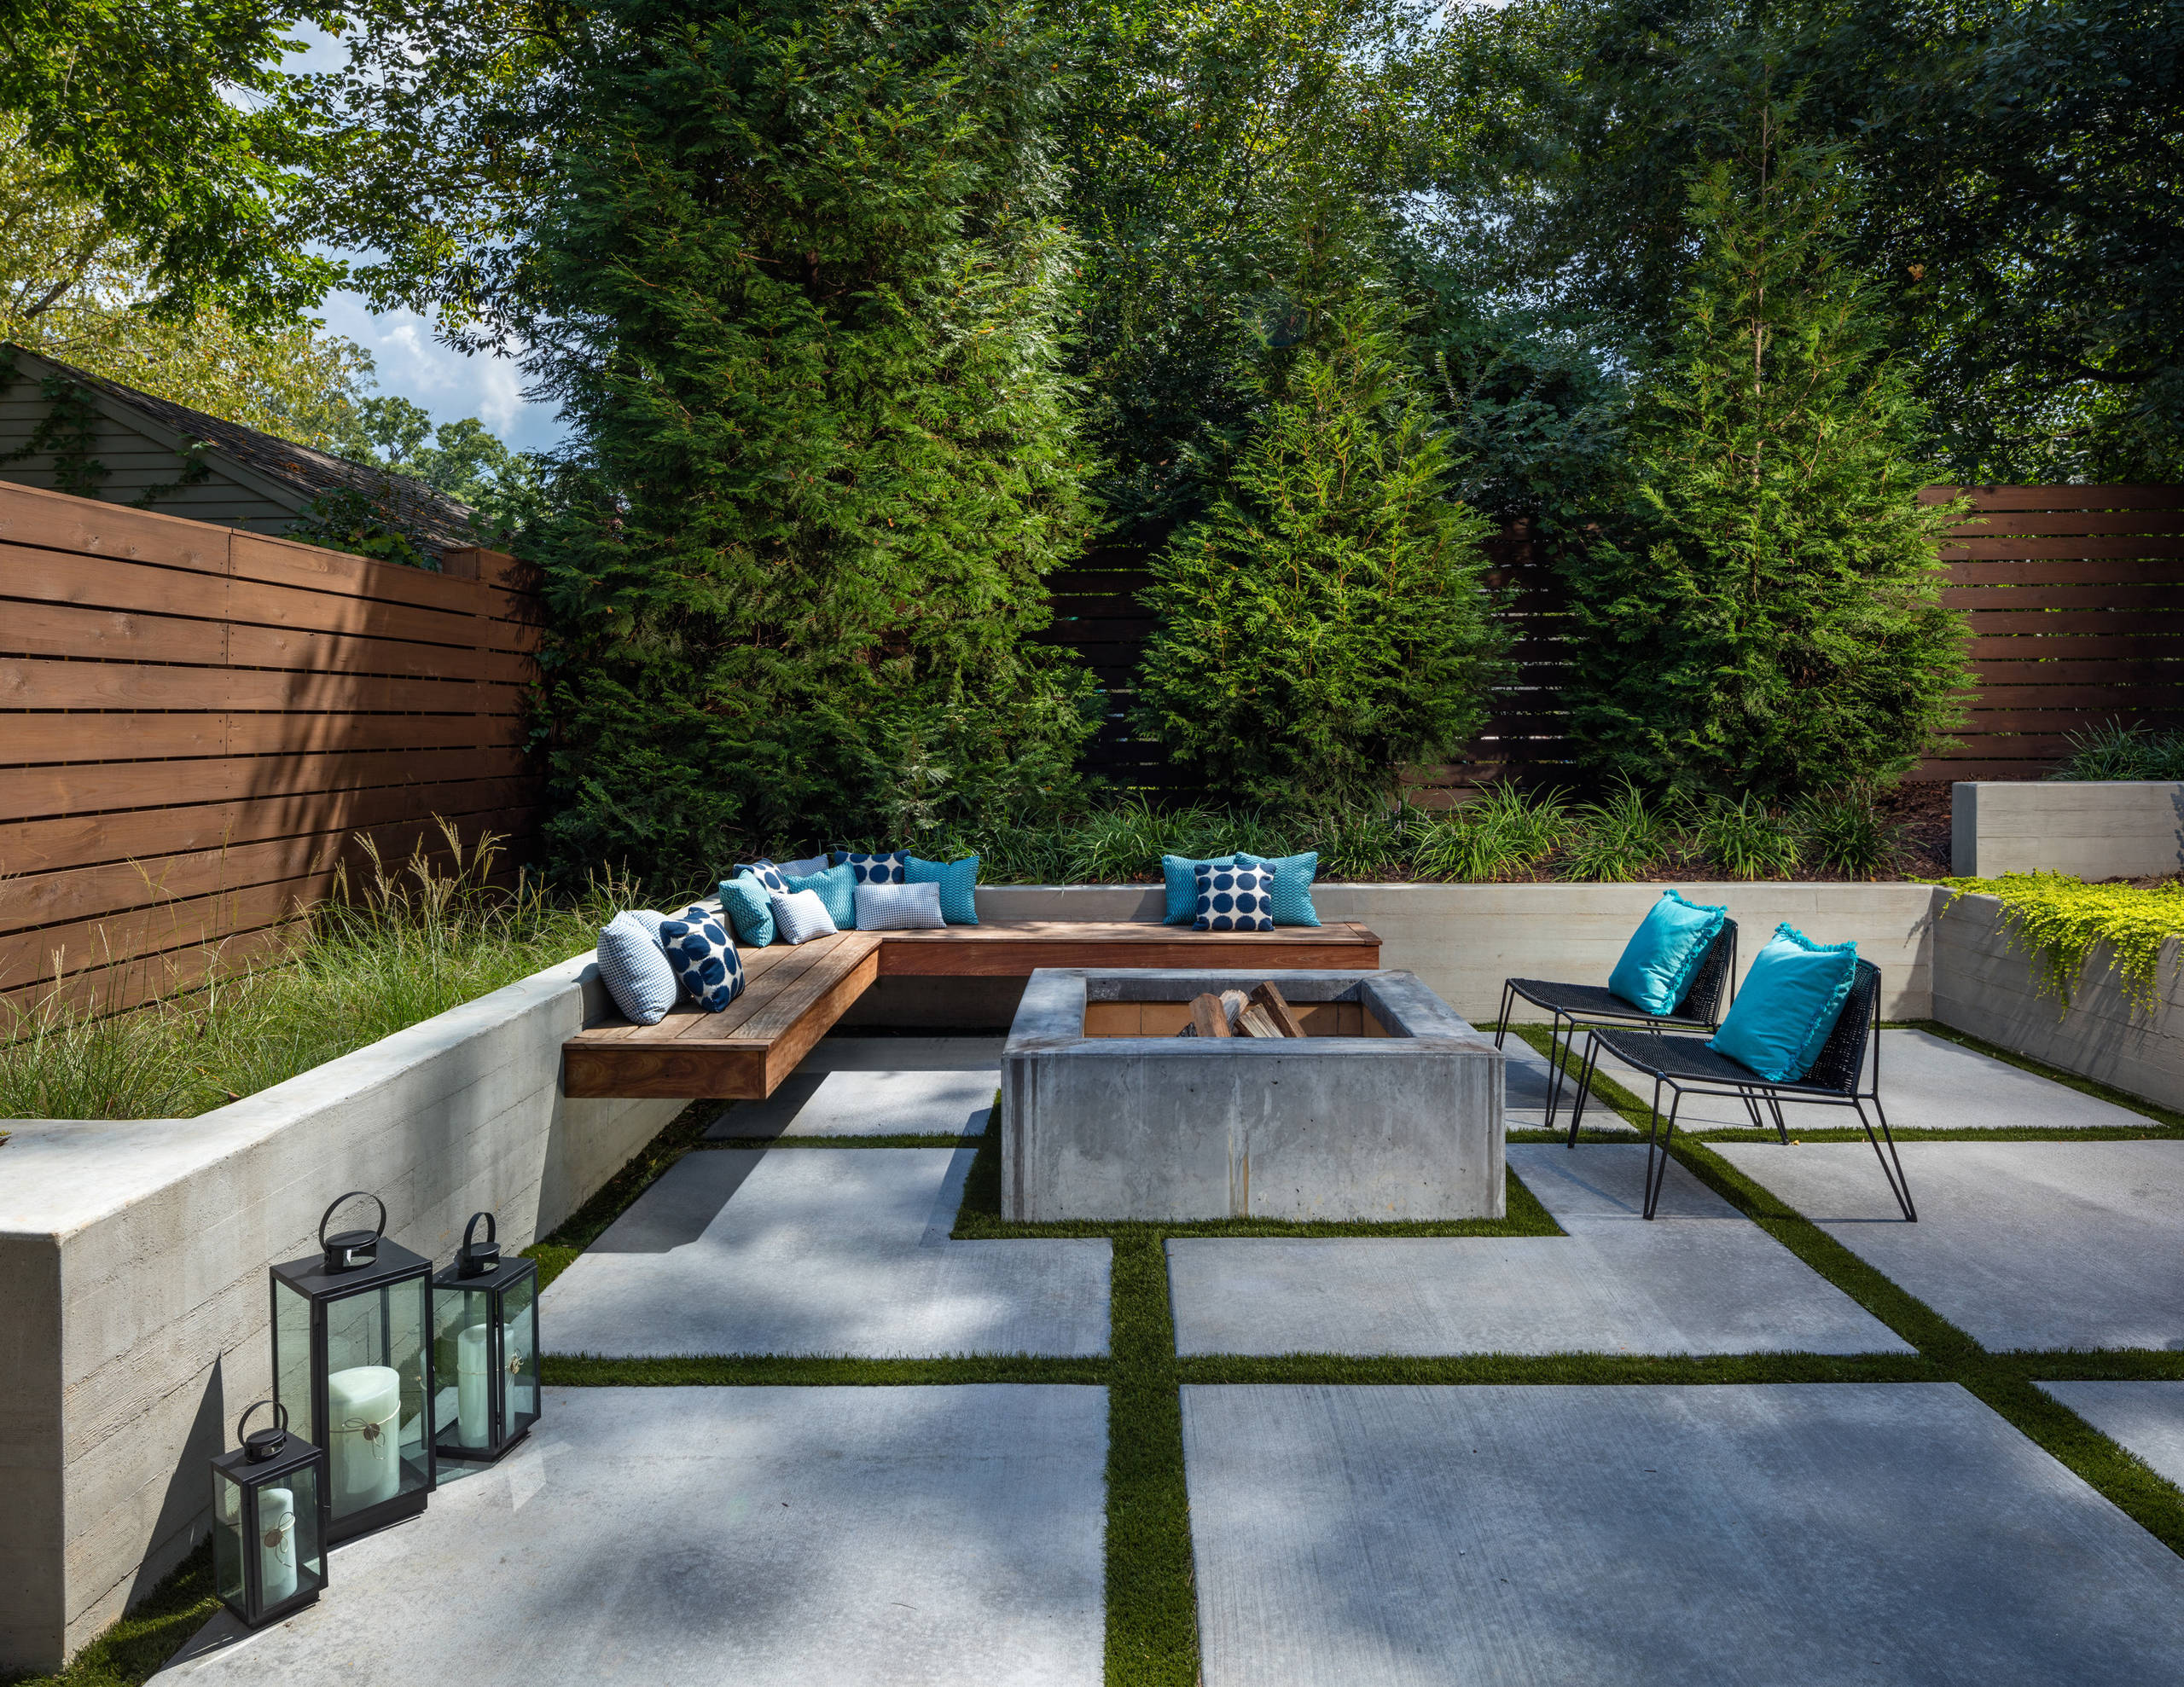 75 Beautiful Concrete Patio Pictures Ideas November 2020 Houzz